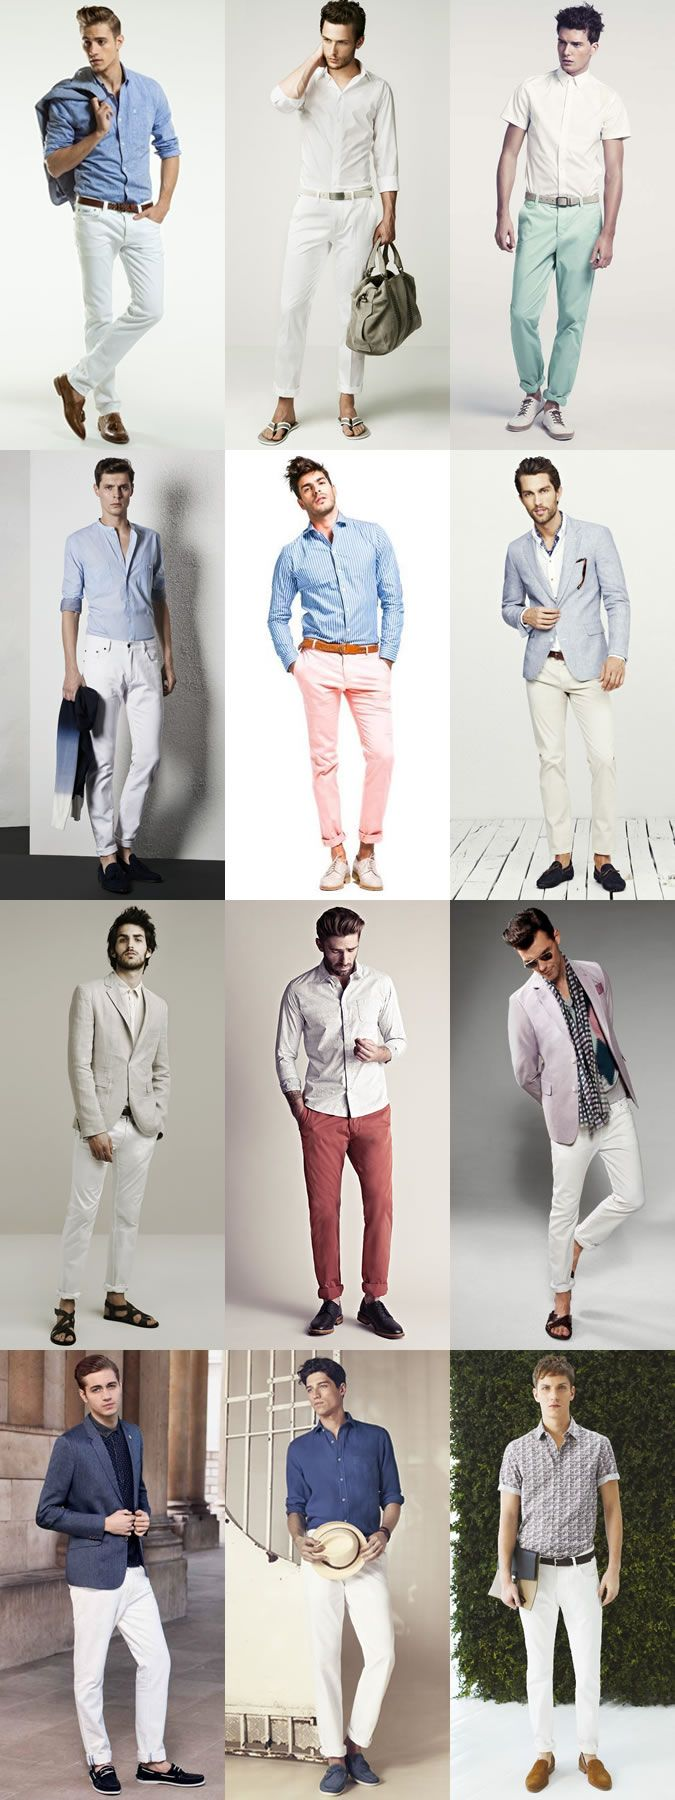 Mens Summer Wedding Guide How To Dress For A The Abroad